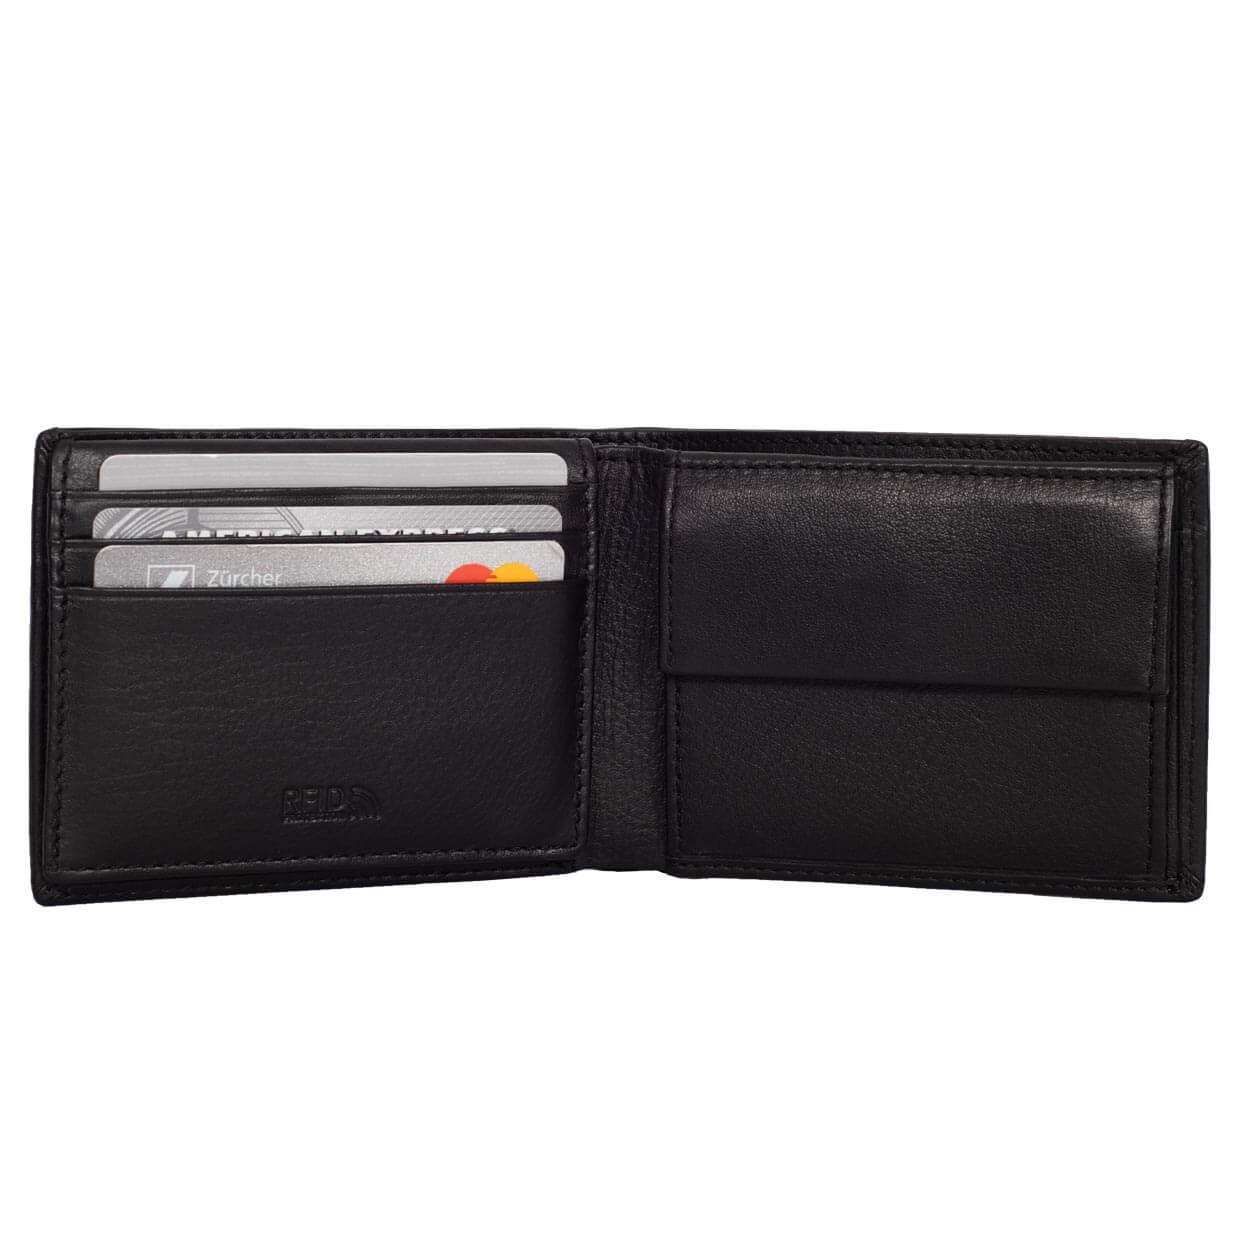 Compact Mens Leather Wallet with Coin Compartment in Midnight Black - Inside View